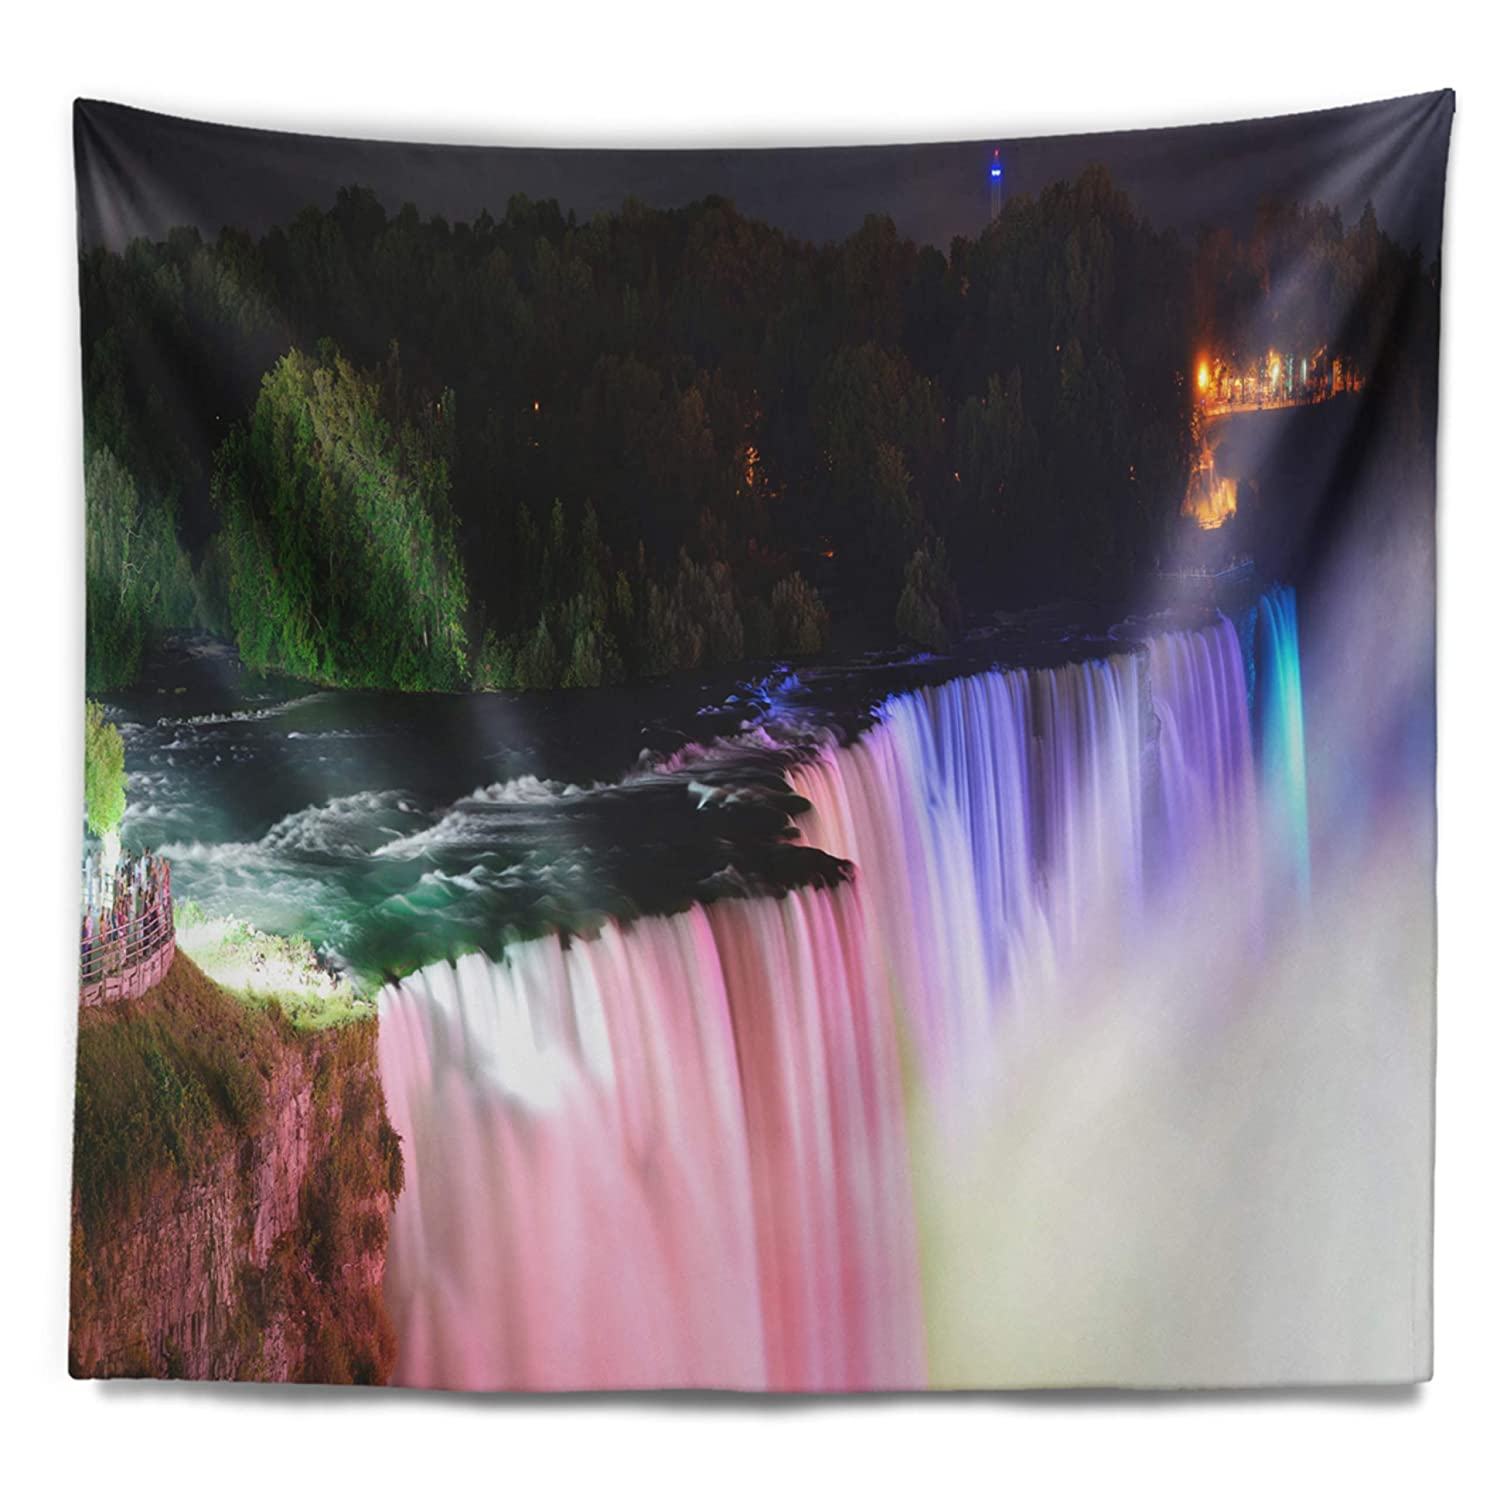 x 68 in 80 in Created On Lightweight Polyester Fabric Designart TAP7140-80-68  Colorful Niagara Falls Panorama Abstract Blanket D/écor Art for Home and Office Wall Tapestry x Large